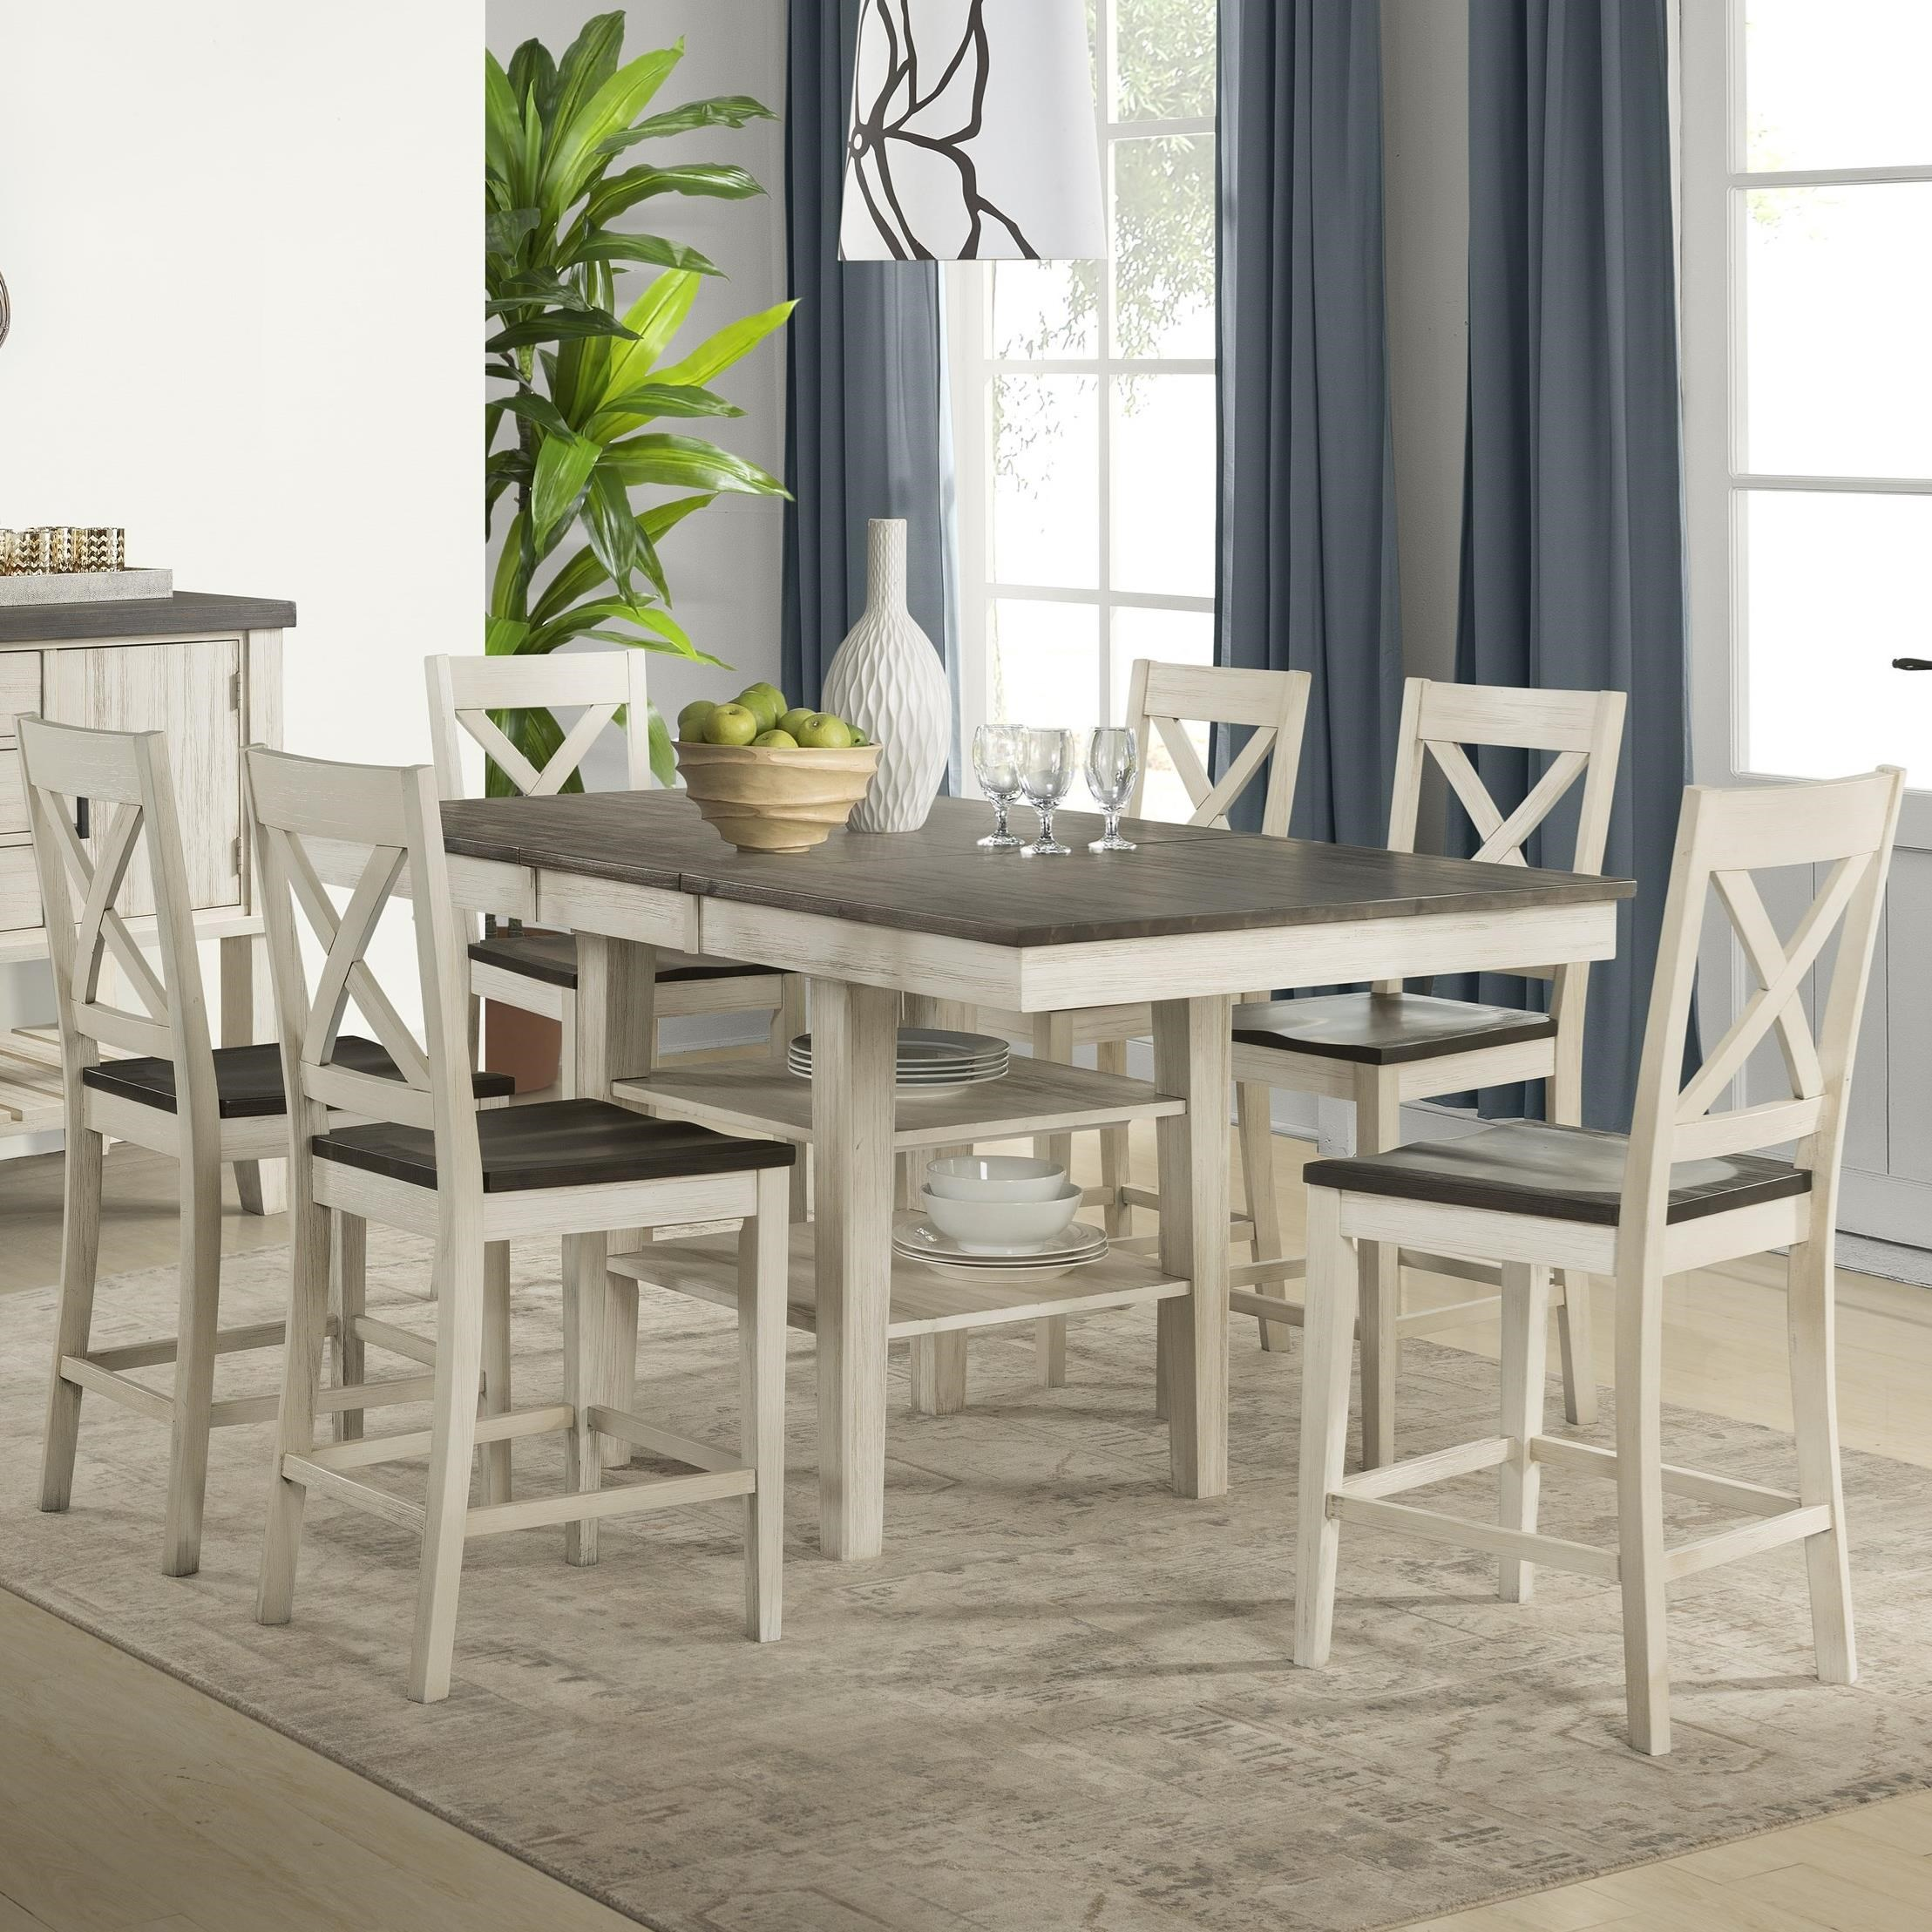 Huron Transitional Counter Height Table and Chair by AAmerica at Johnny Janosik